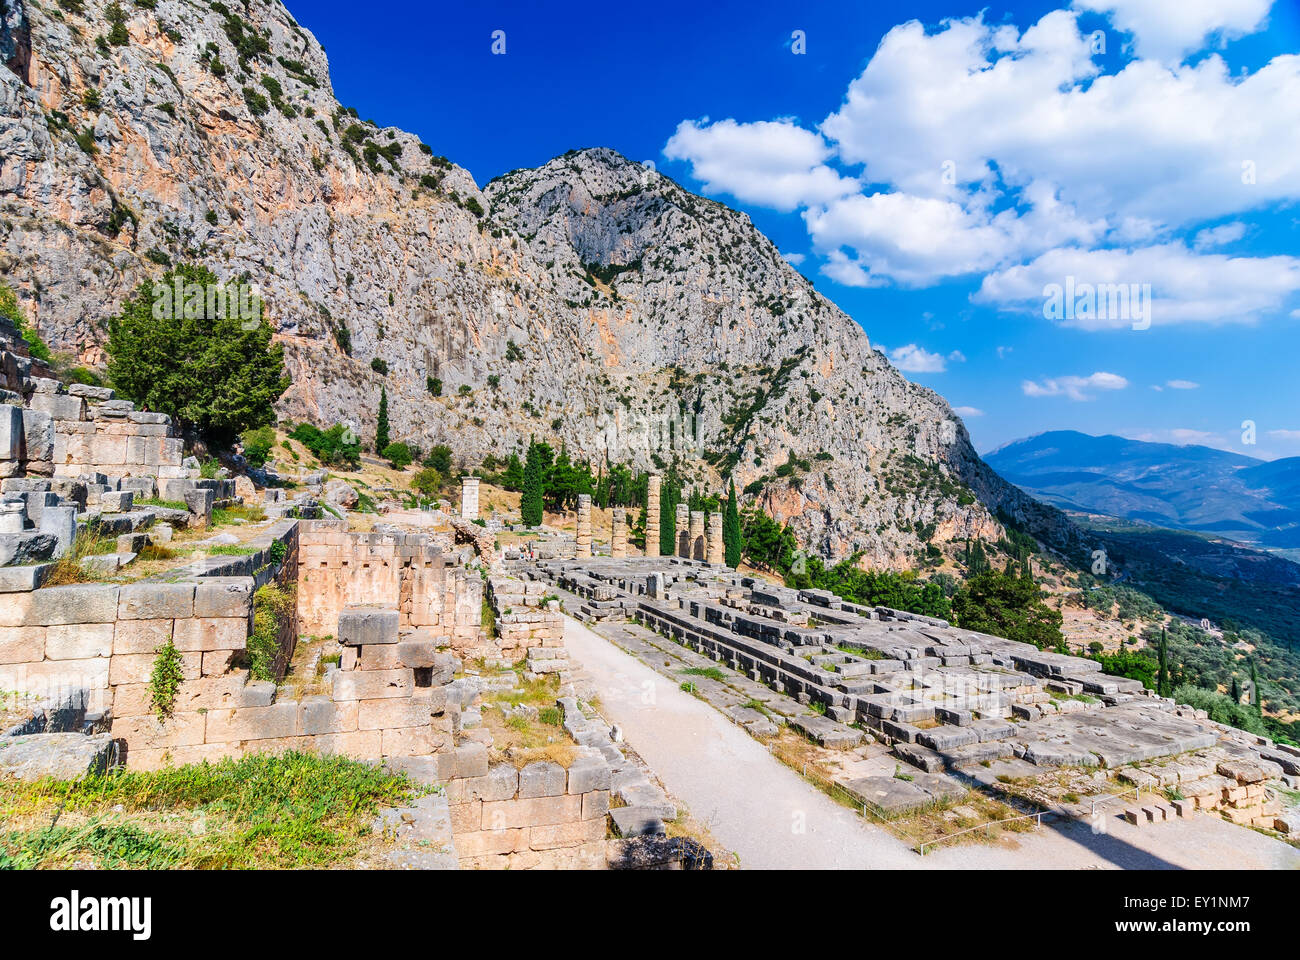 Ancient Greece. Ruins remains of the large temple of Apollo, Delphi, Greece, greek culture landmark. Stock Photo